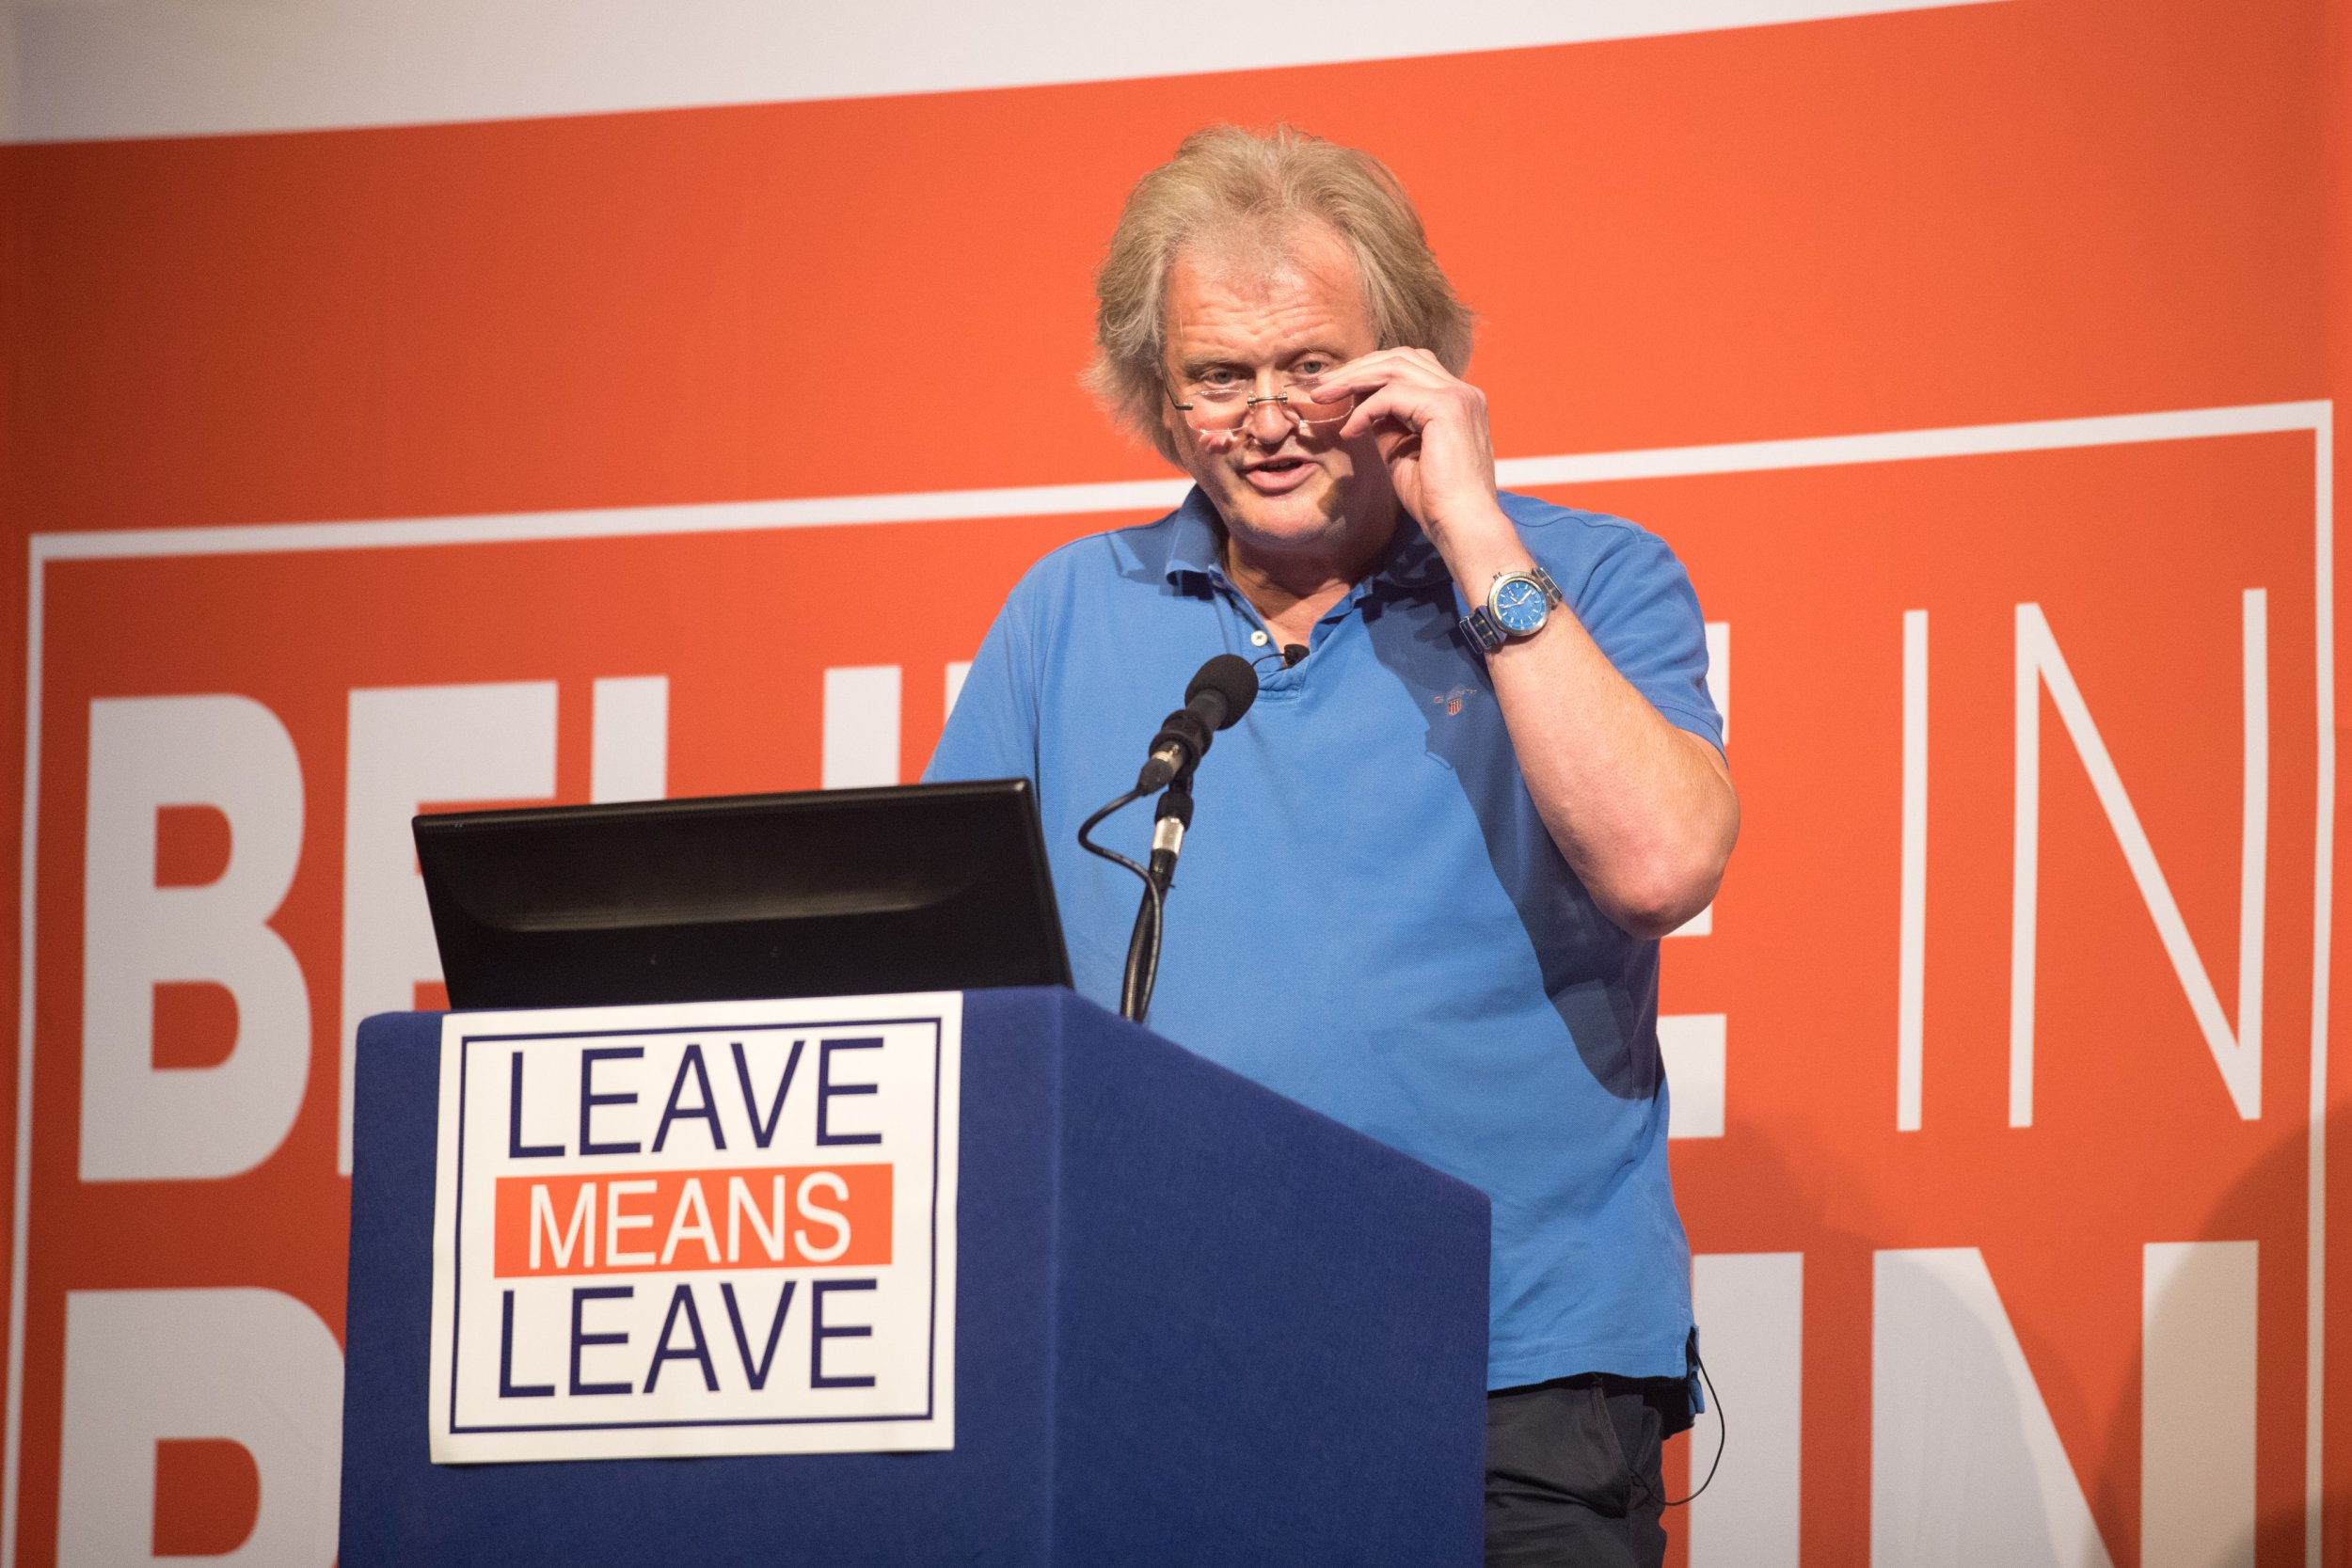 Wetherspoons profits drop 19% and its boss is blaming Remainers